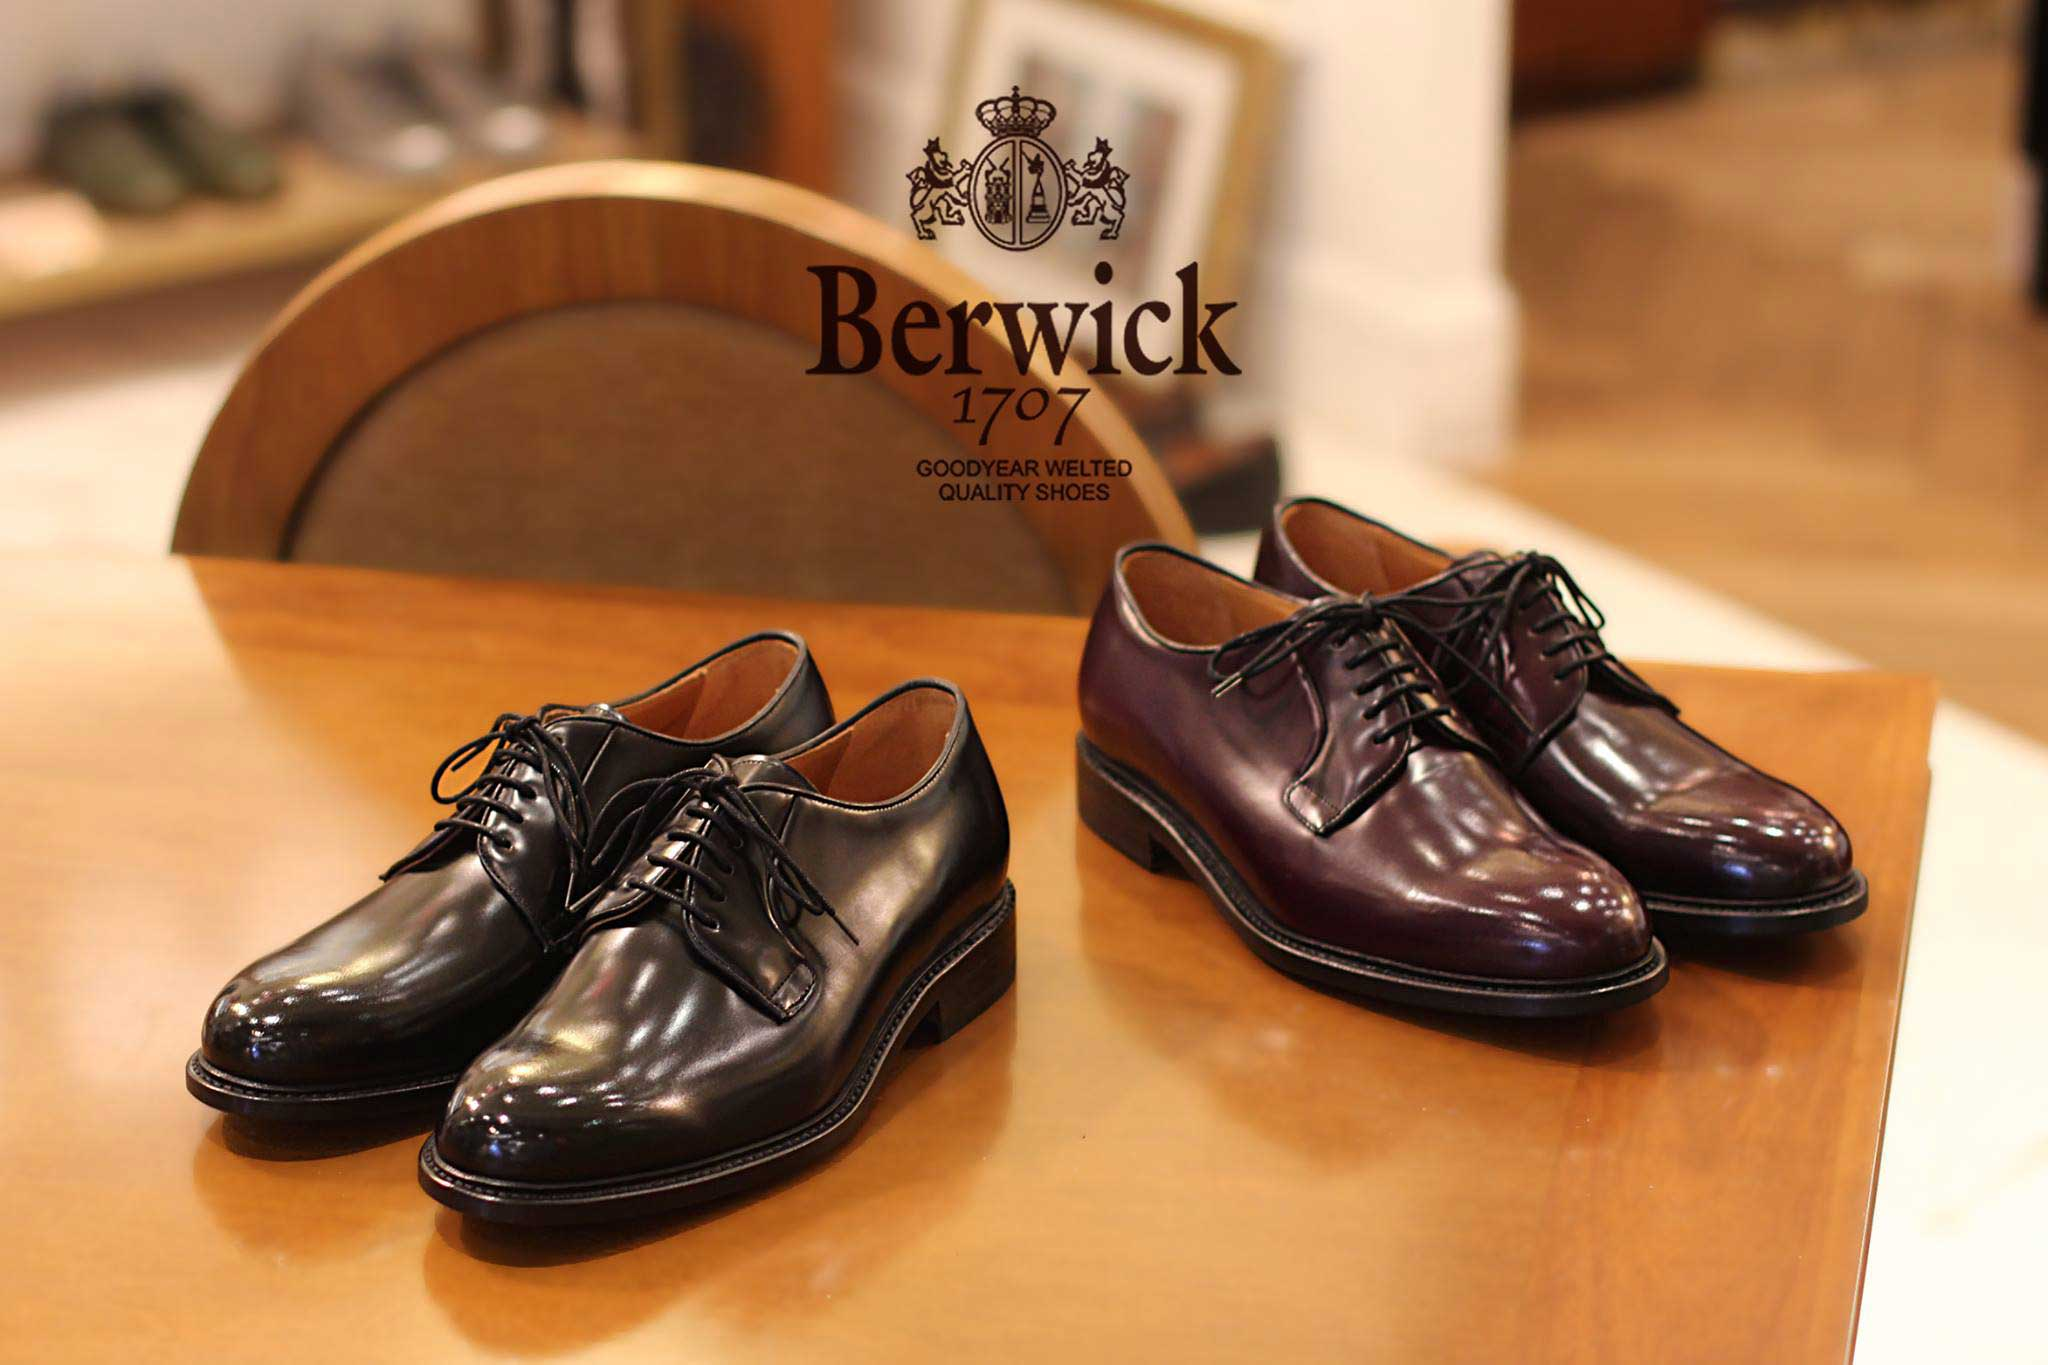 Berwick 1707 無飾德比鞋 Plain Toe Derby - Burgundy